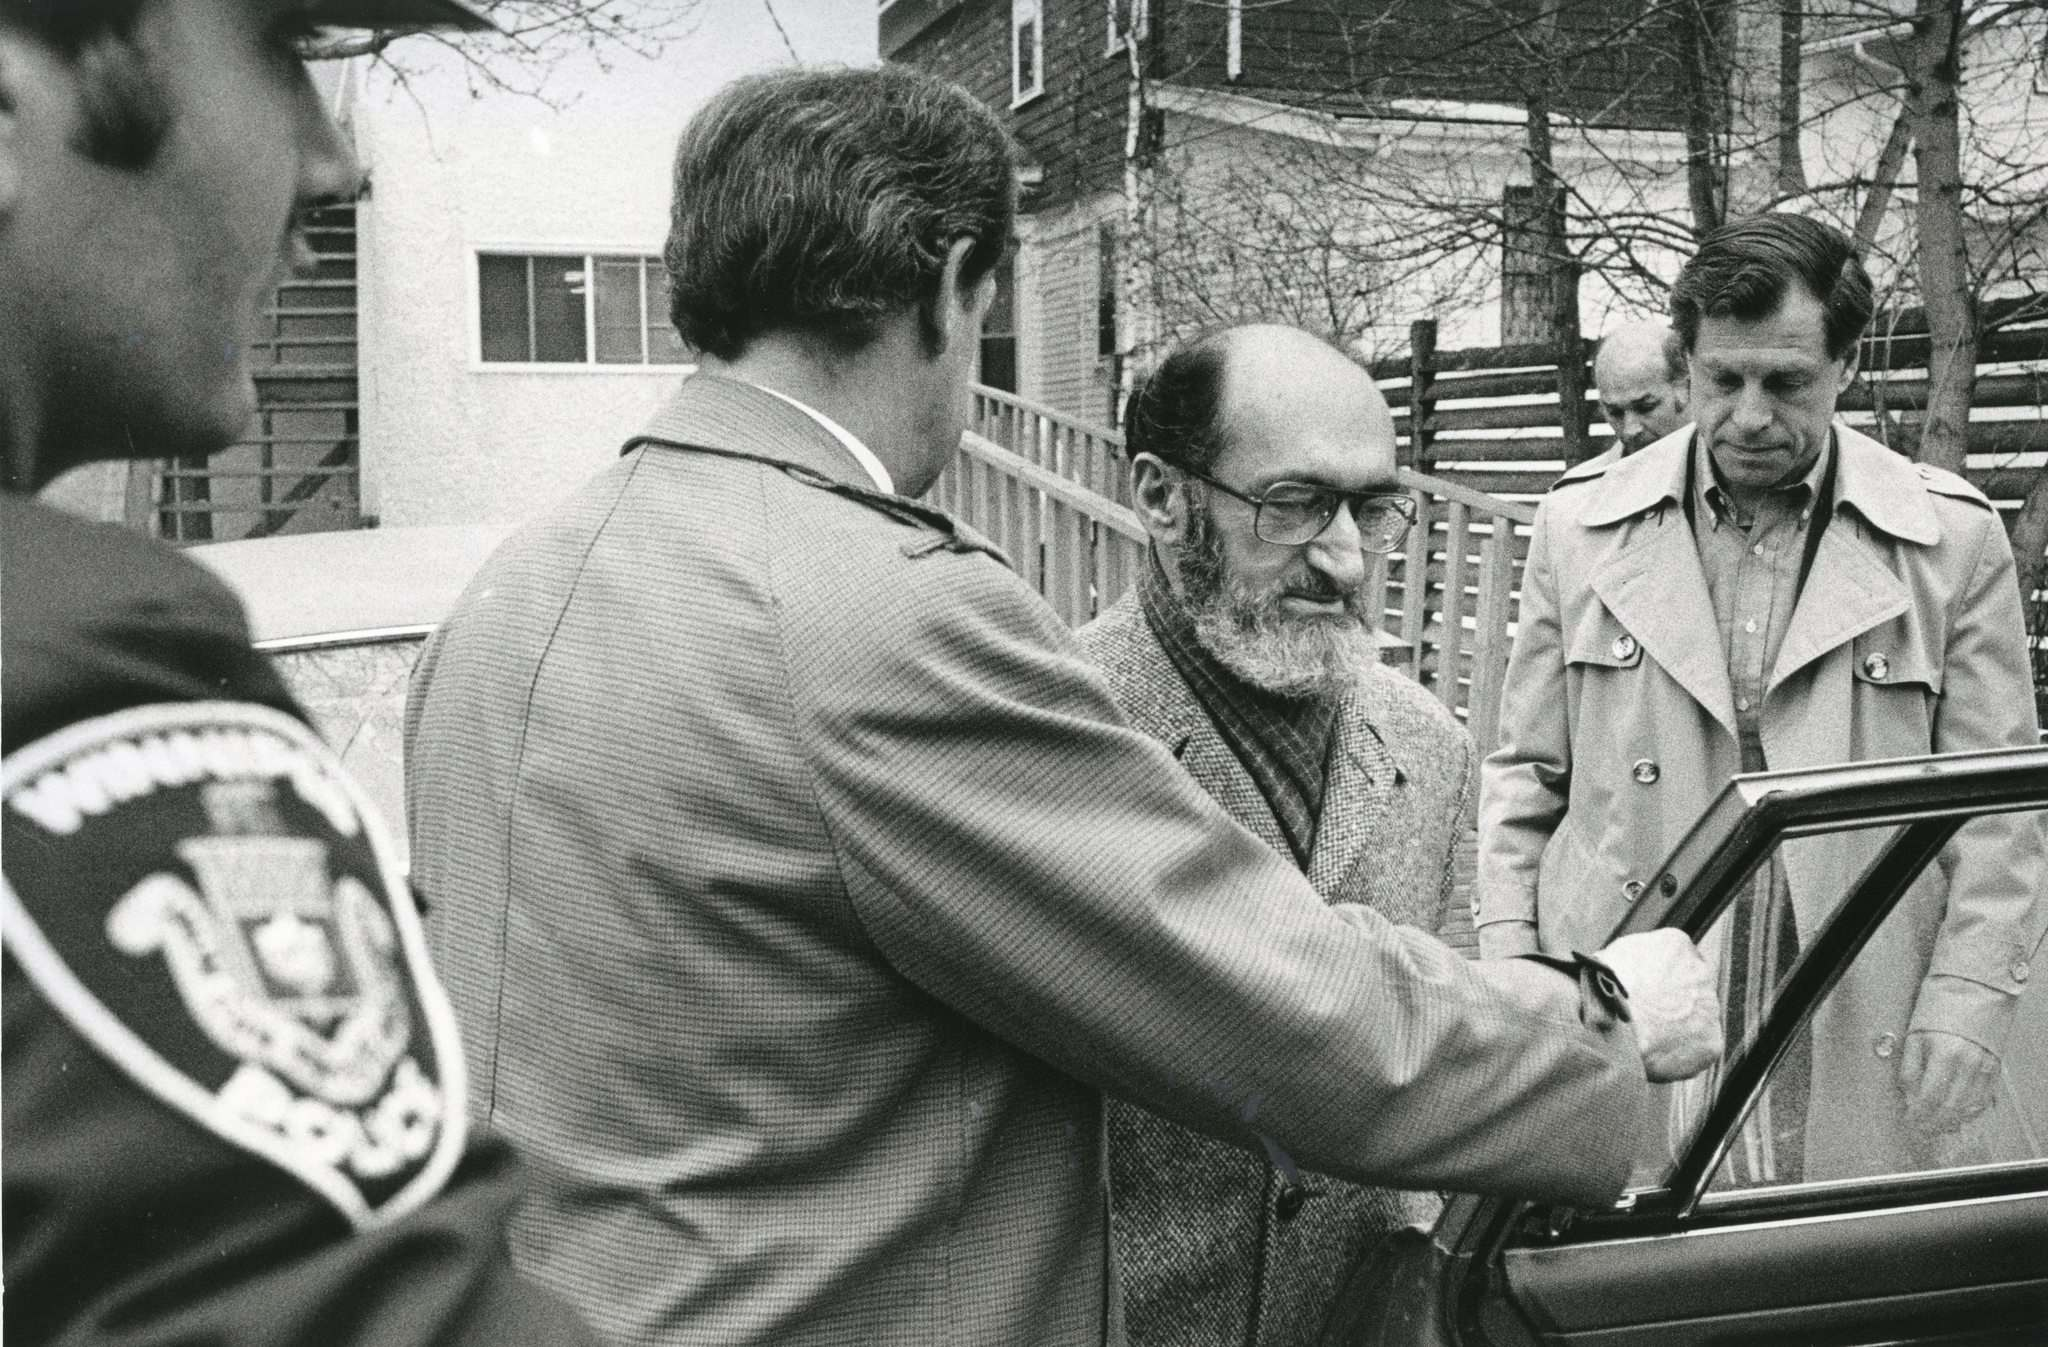 Dr. Henry Morgentaler, with Brodsky to his left, is arrested at his then-illegal abortion clinic in 1985 following a police raid.